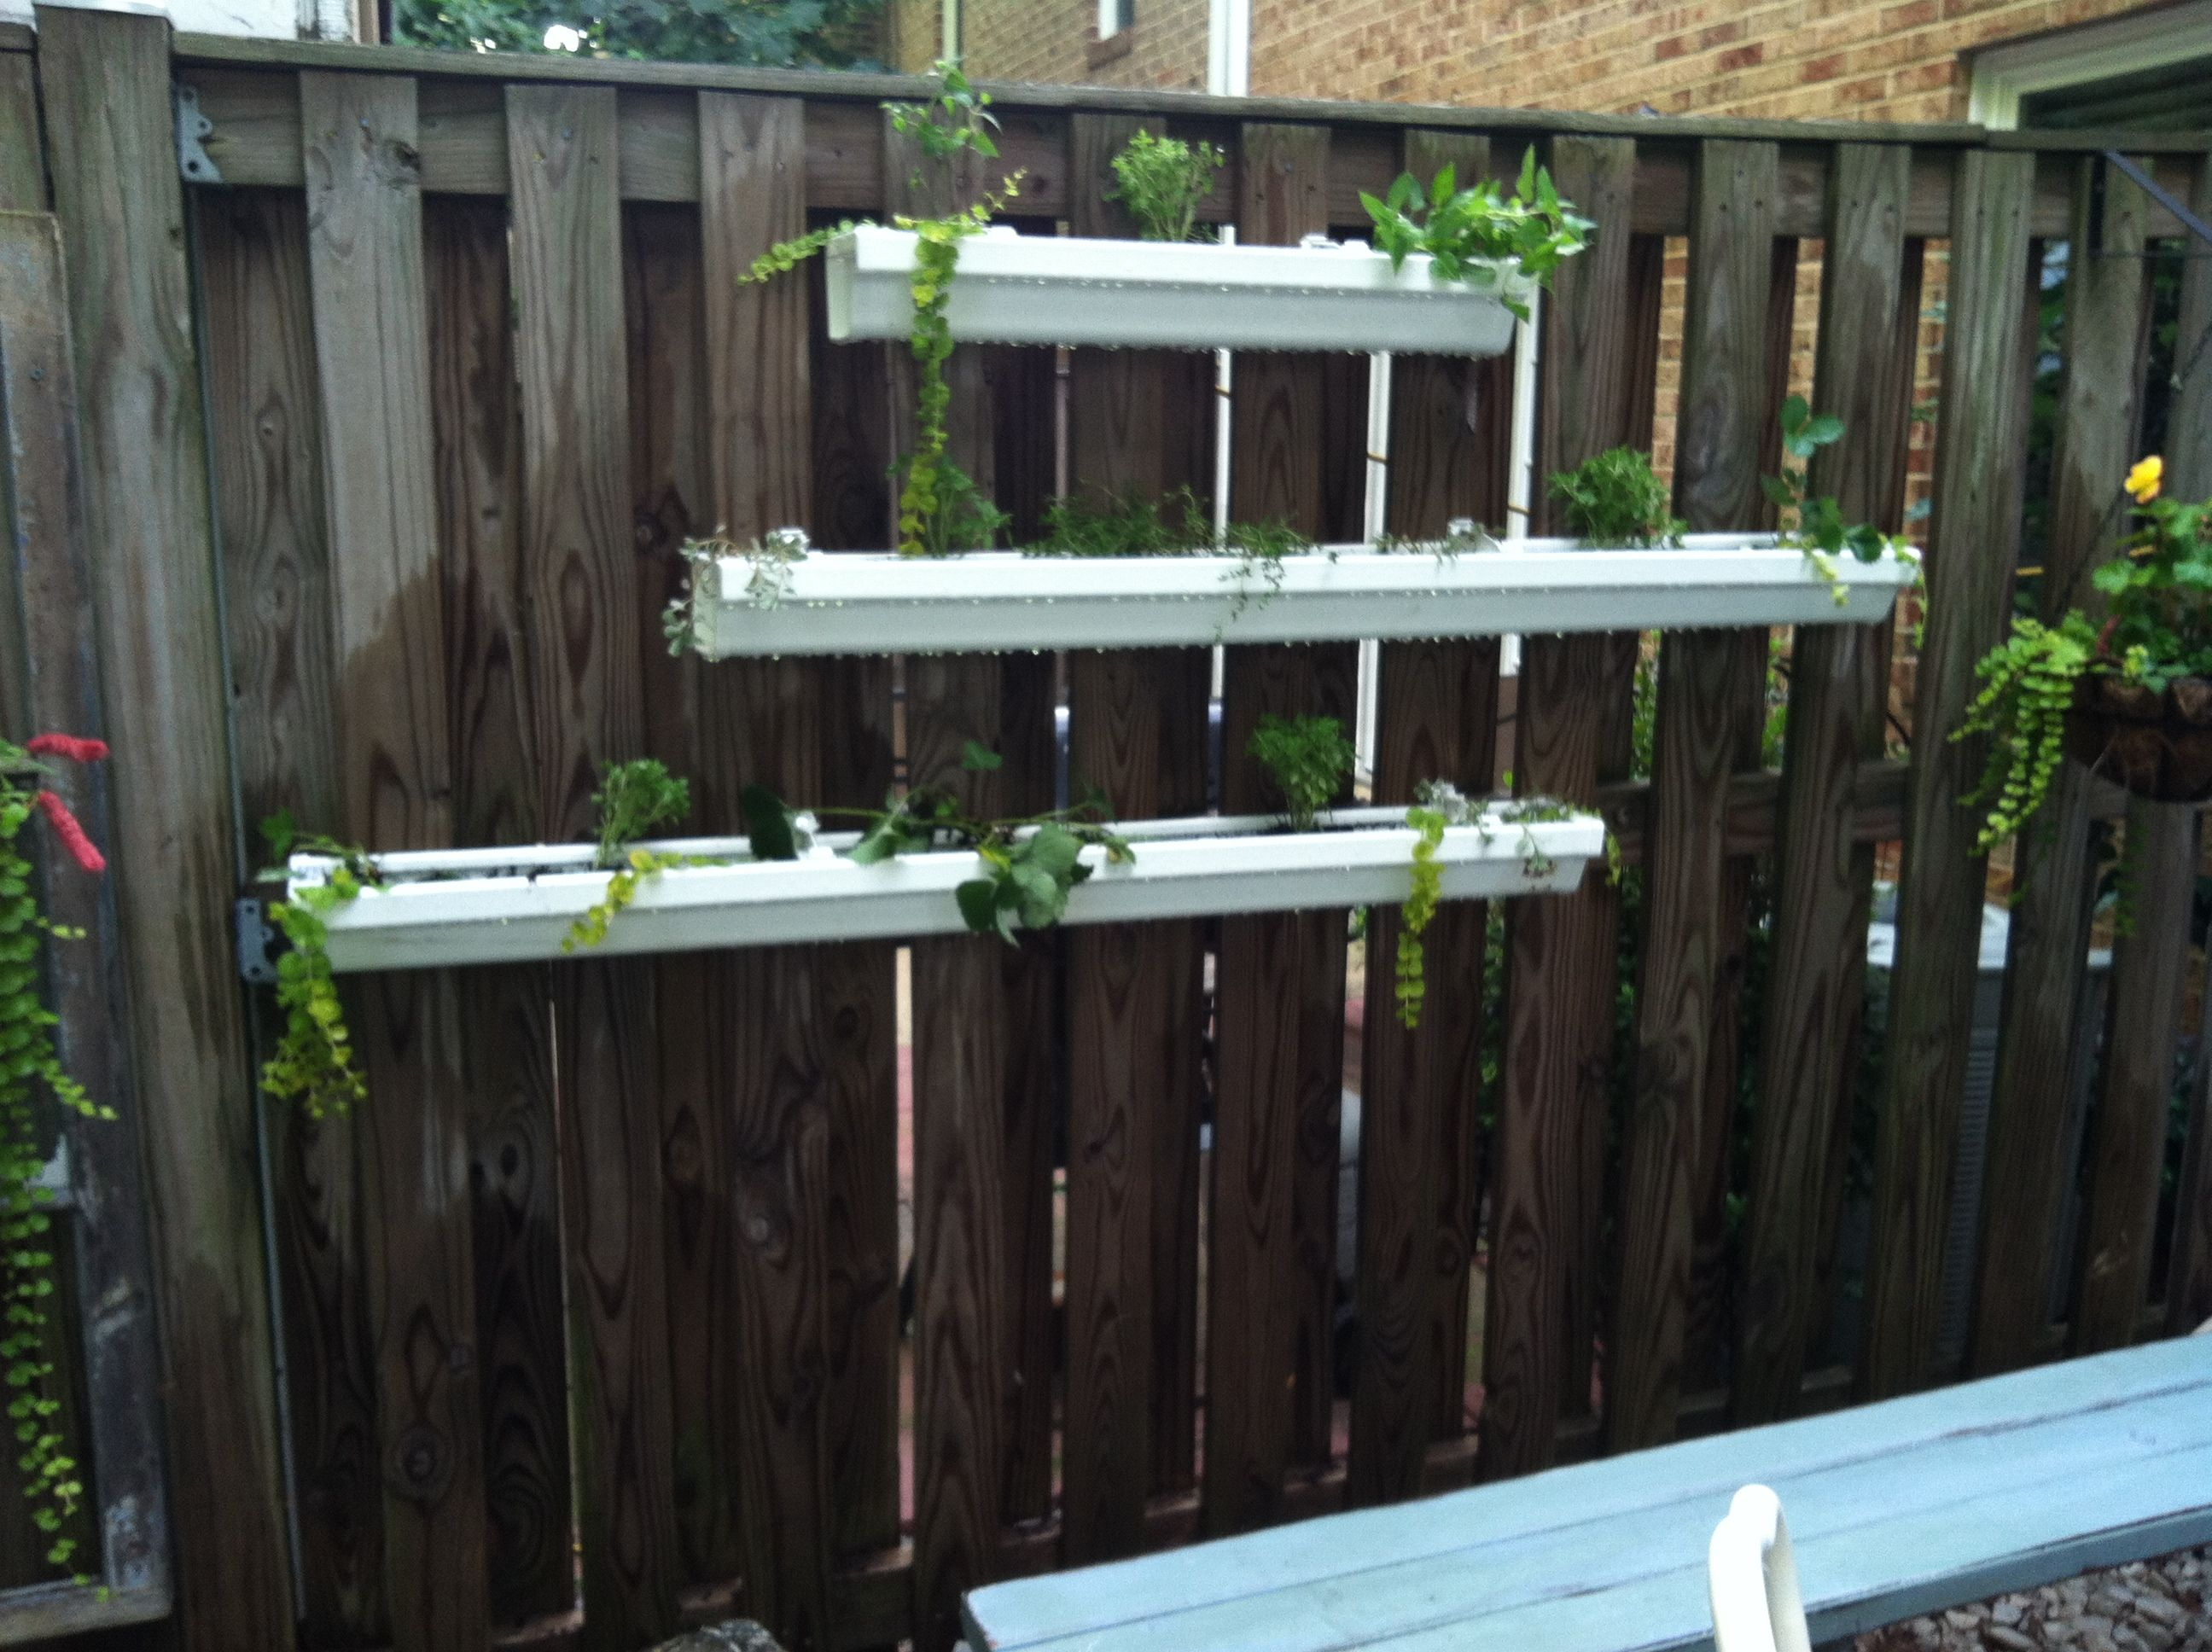 Gutter Garden Vinyl Gutters Capped And Mounted With